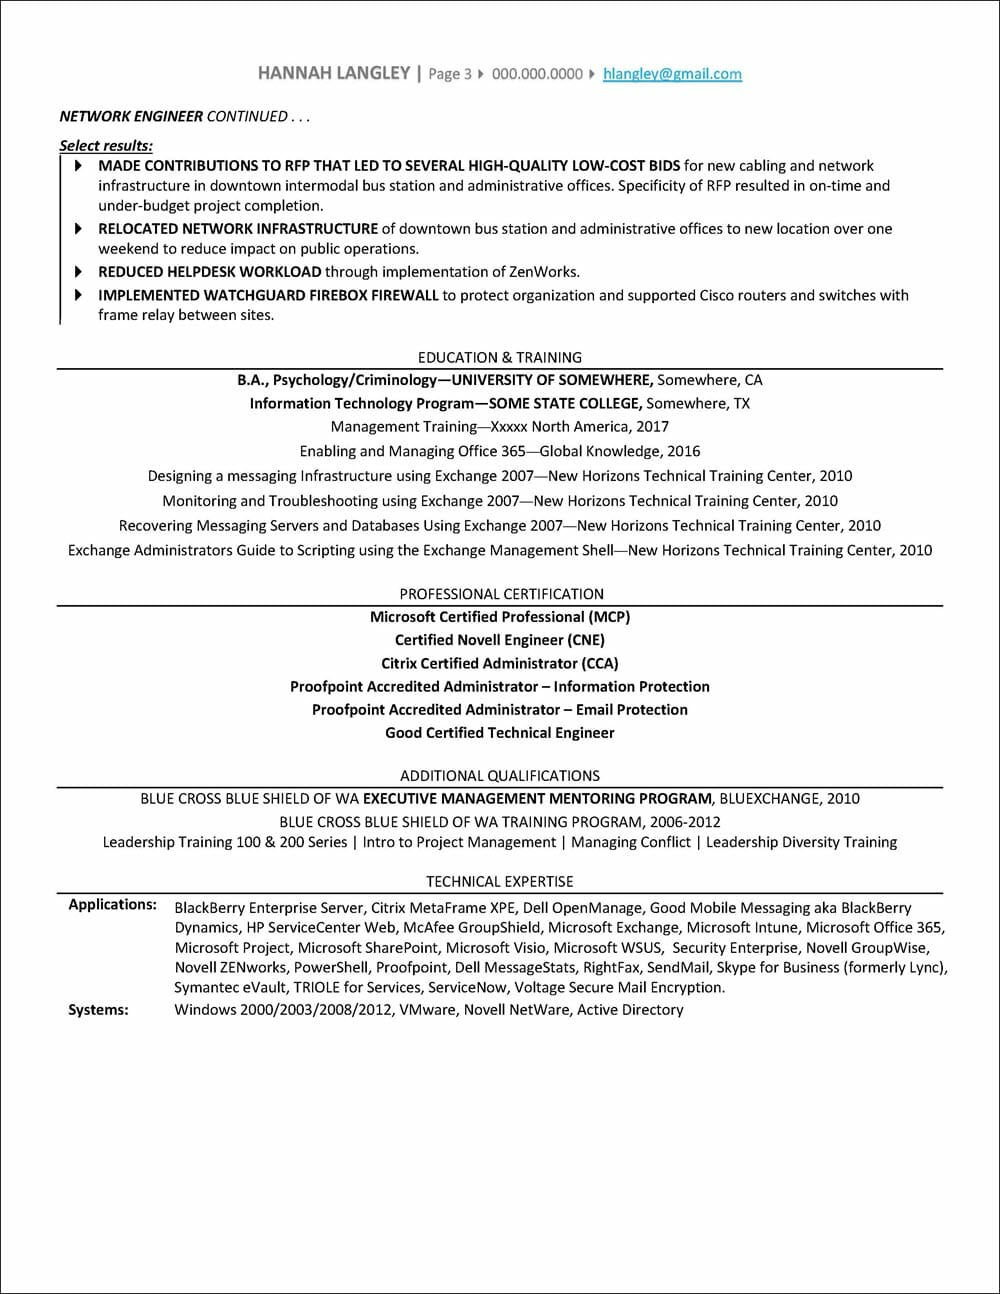 IT Manager Resume page 3